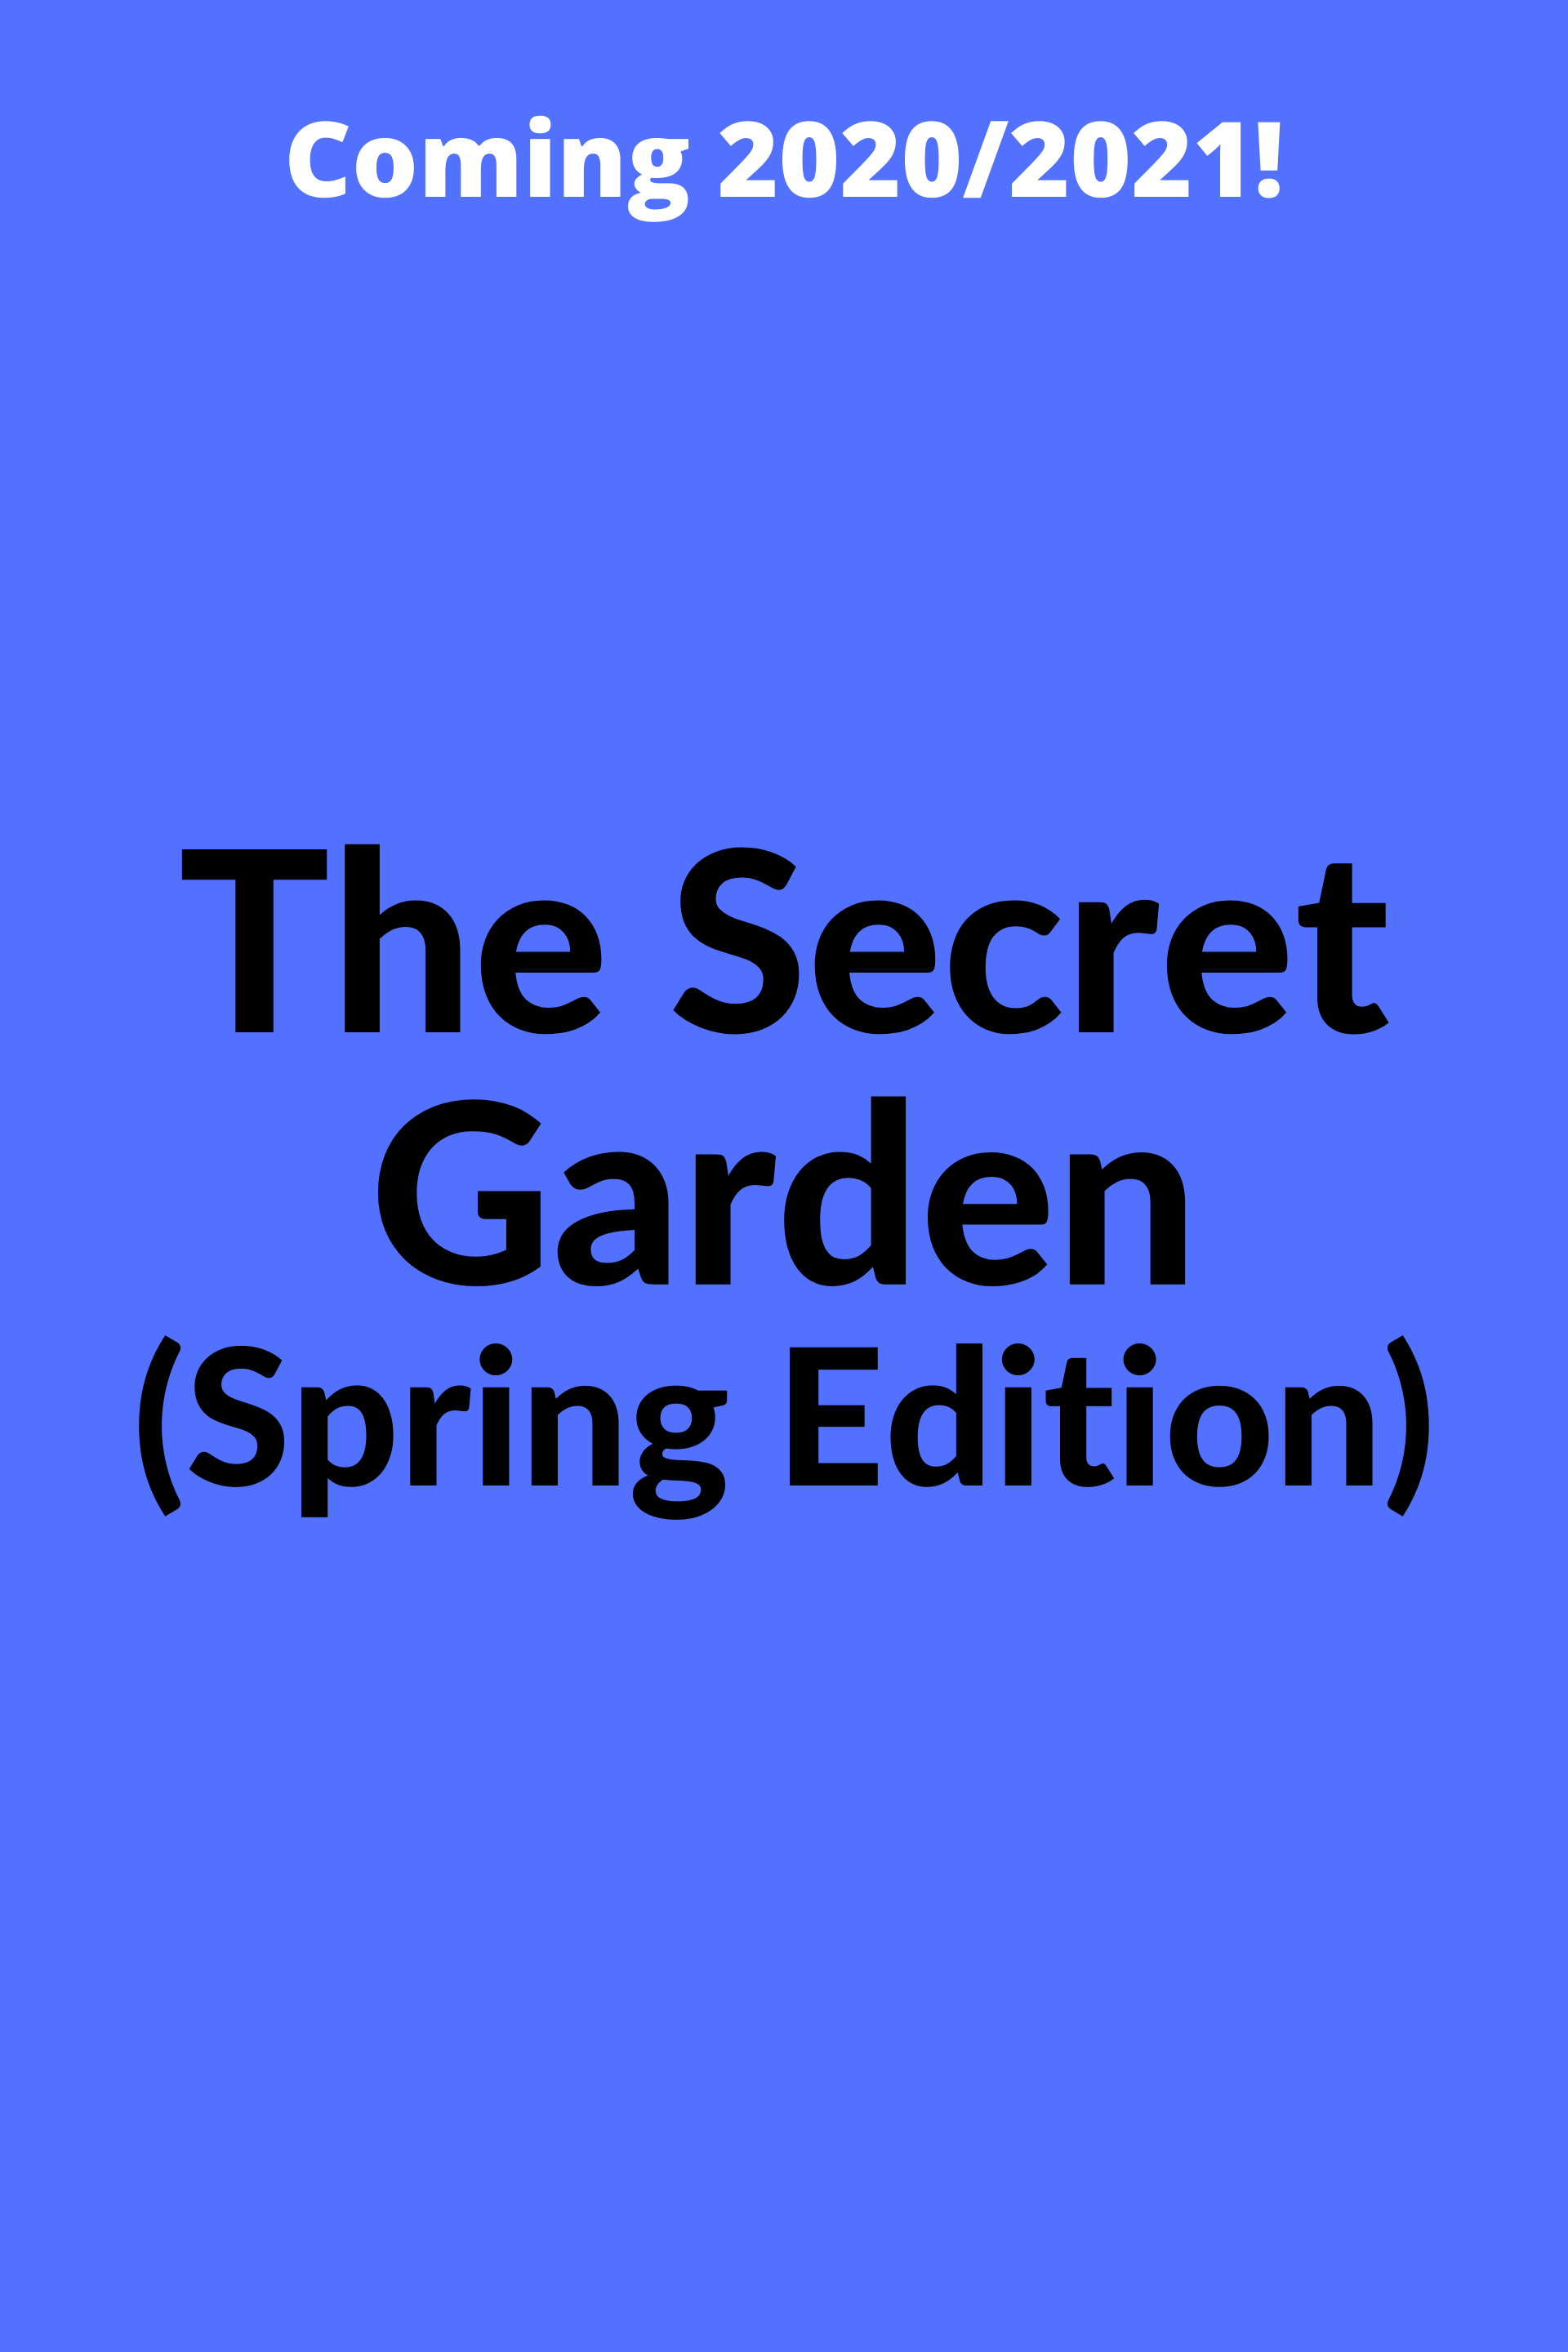 The Secret Garden (Spring Edition)